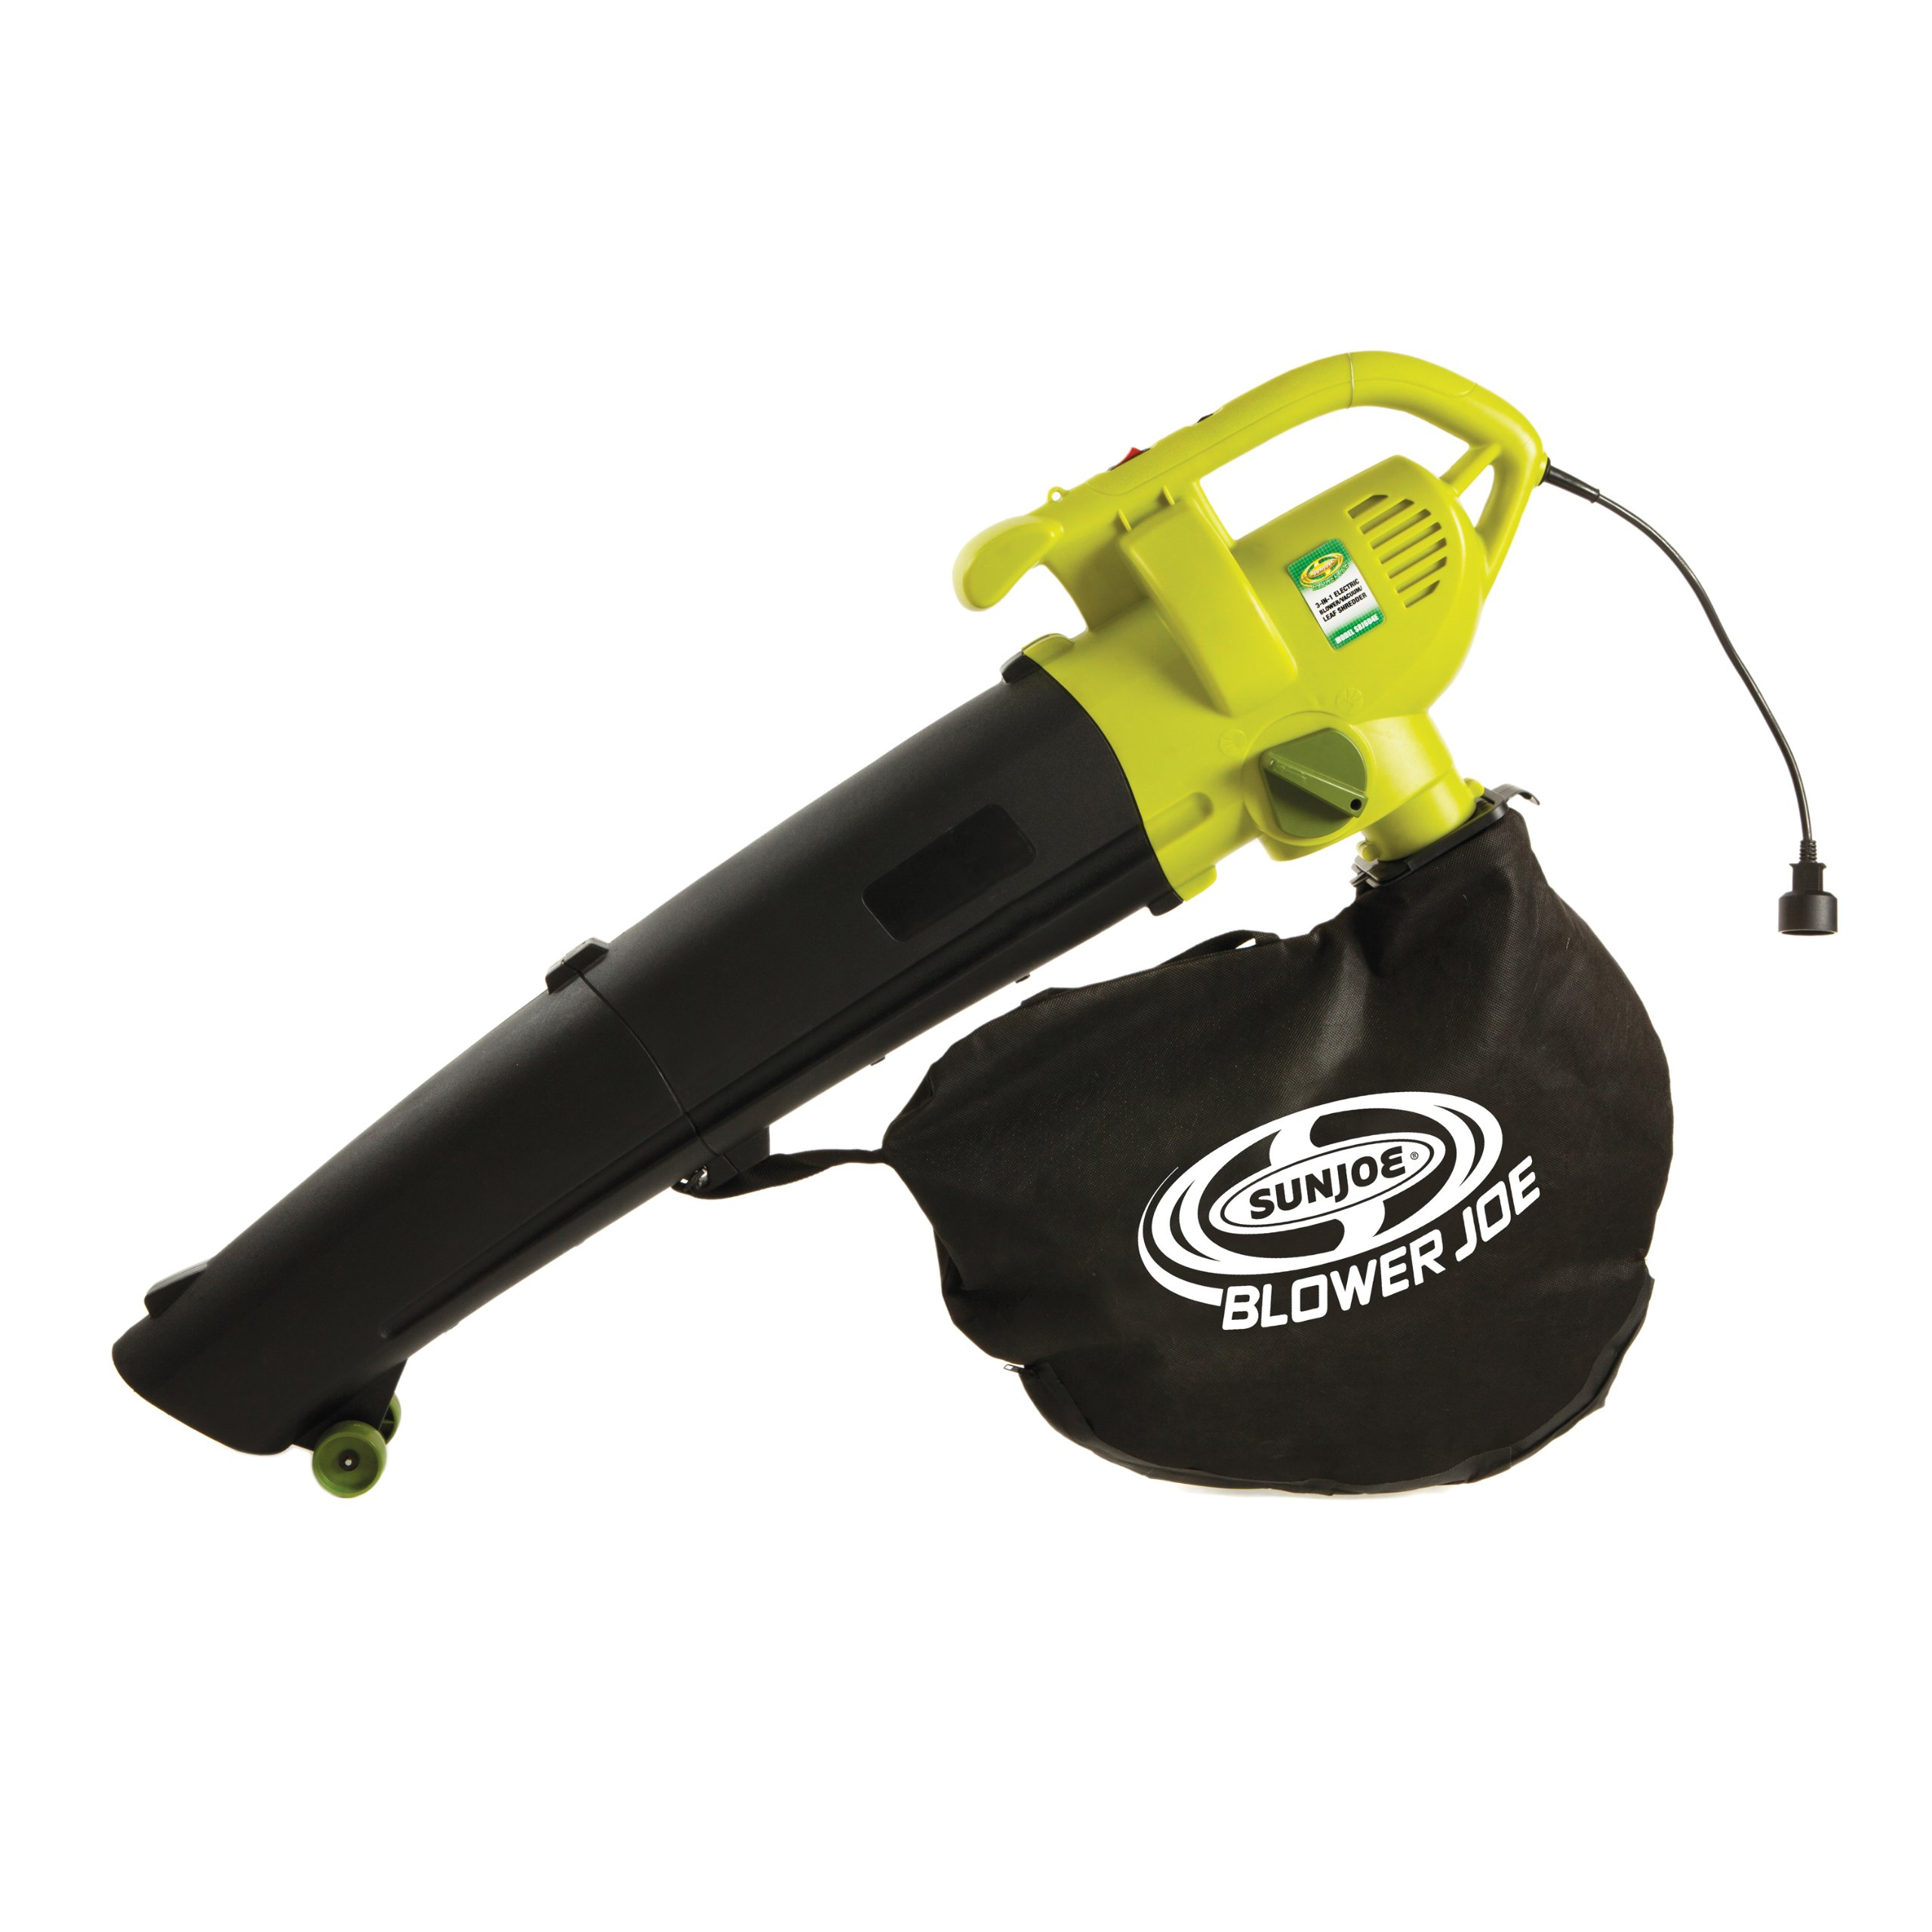 Sun Joe SBJ604E Blower Joe Electric Blower, Vacuum and Leaf Shredder, Lime